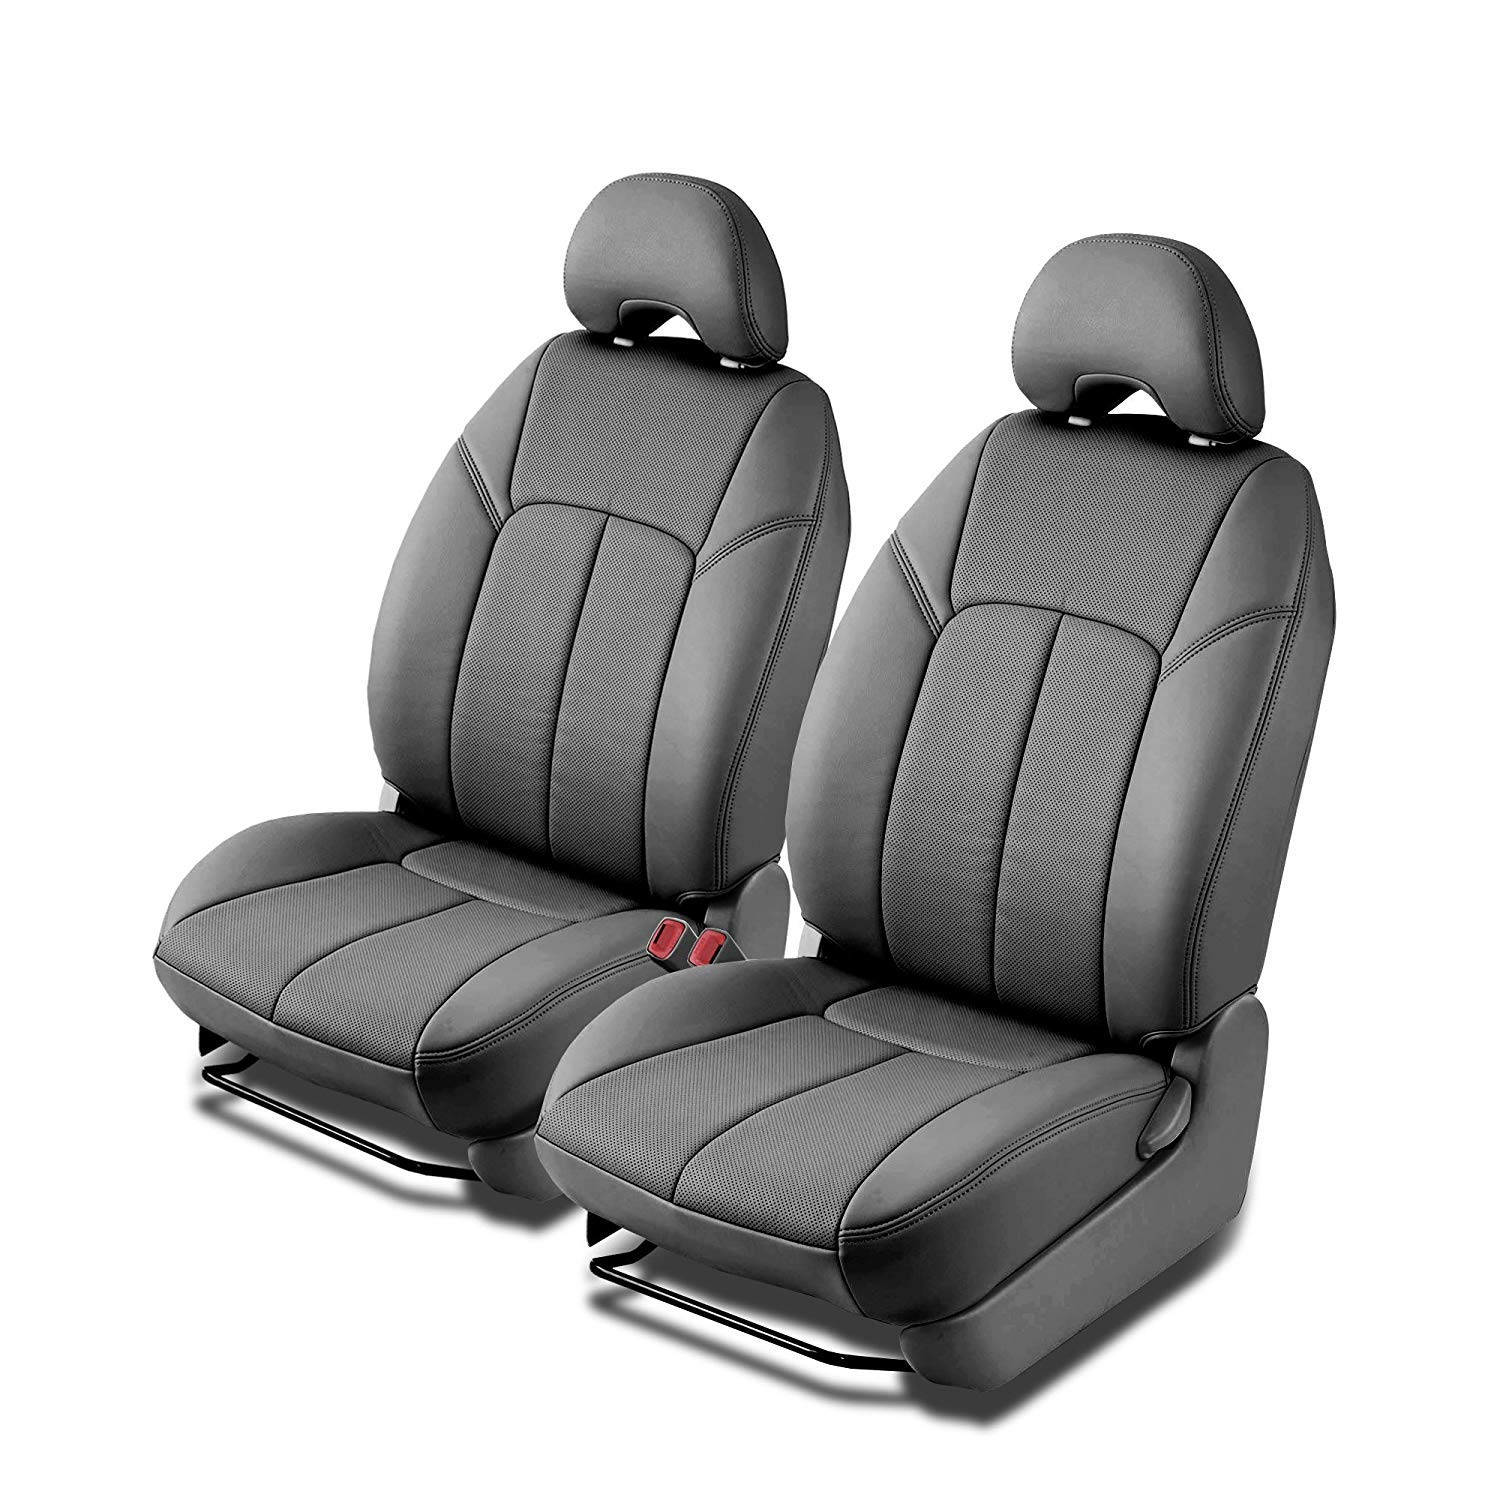 Clazzio 310021gryy Grey Leather Front Row Seat Cover for Honda Civic 4 Door DX-VP LX-S